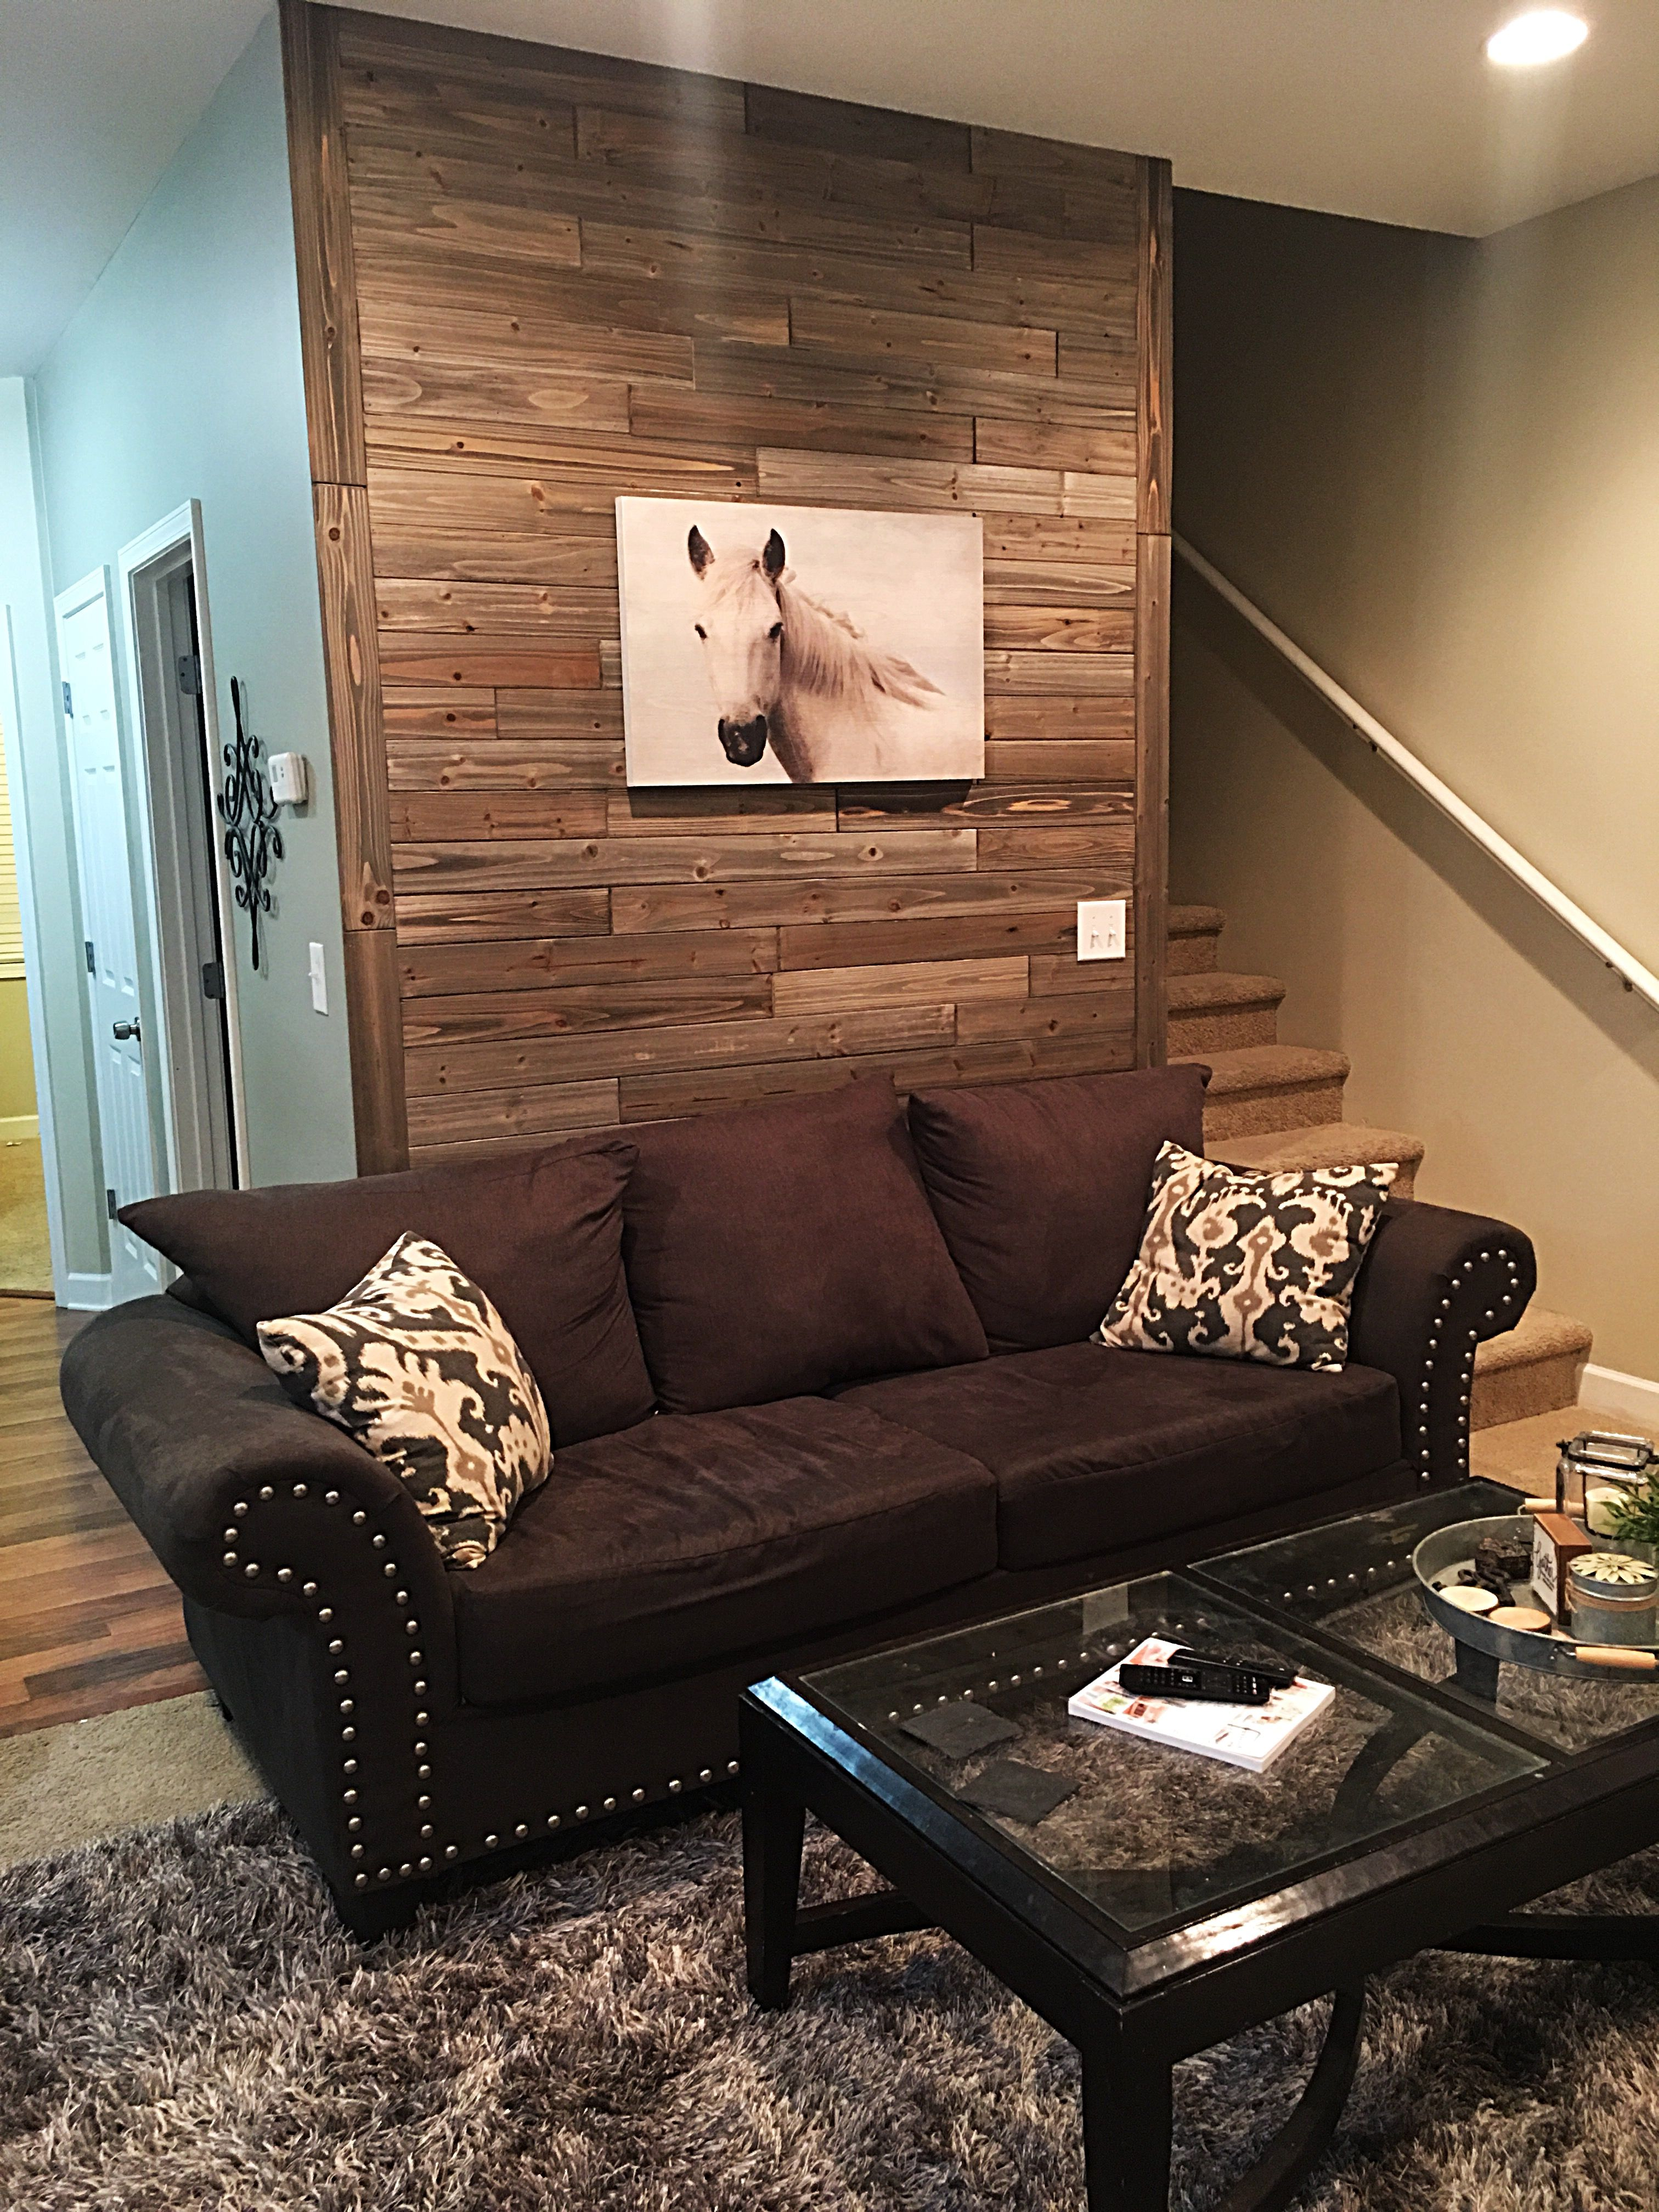 Pallet wall using wood planks from Lowe's | Wall plank ...